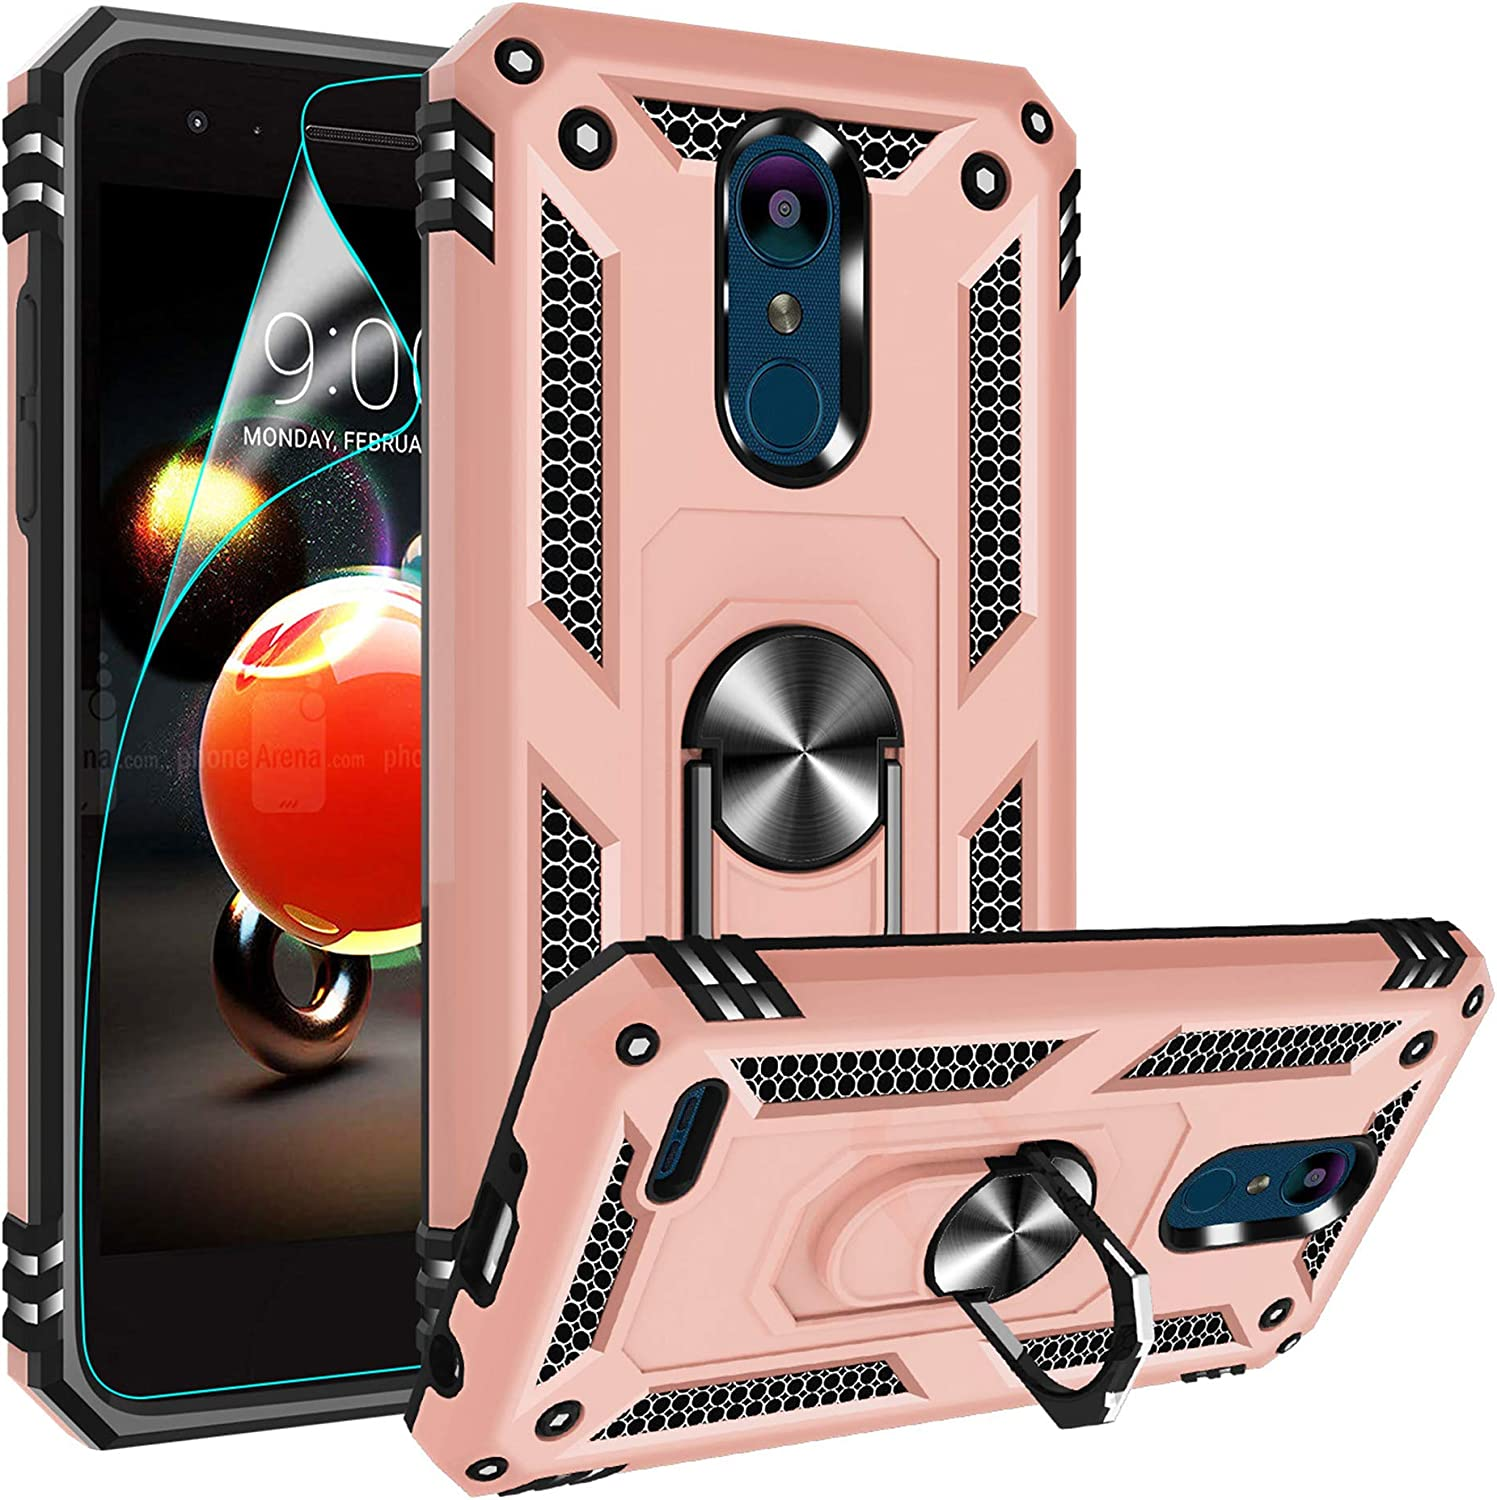 Compatible for LG Tribute Empire Case, LG Aristo 3/Aristo 2/Rebel 4 LTE/Aristo 2 Plus/Phoenix 4/Tribute Dynasty/Zone 4 Case, Gritup Metal Ring Kicktand Cover Phone Case for LG K8 2018 Rose Gold